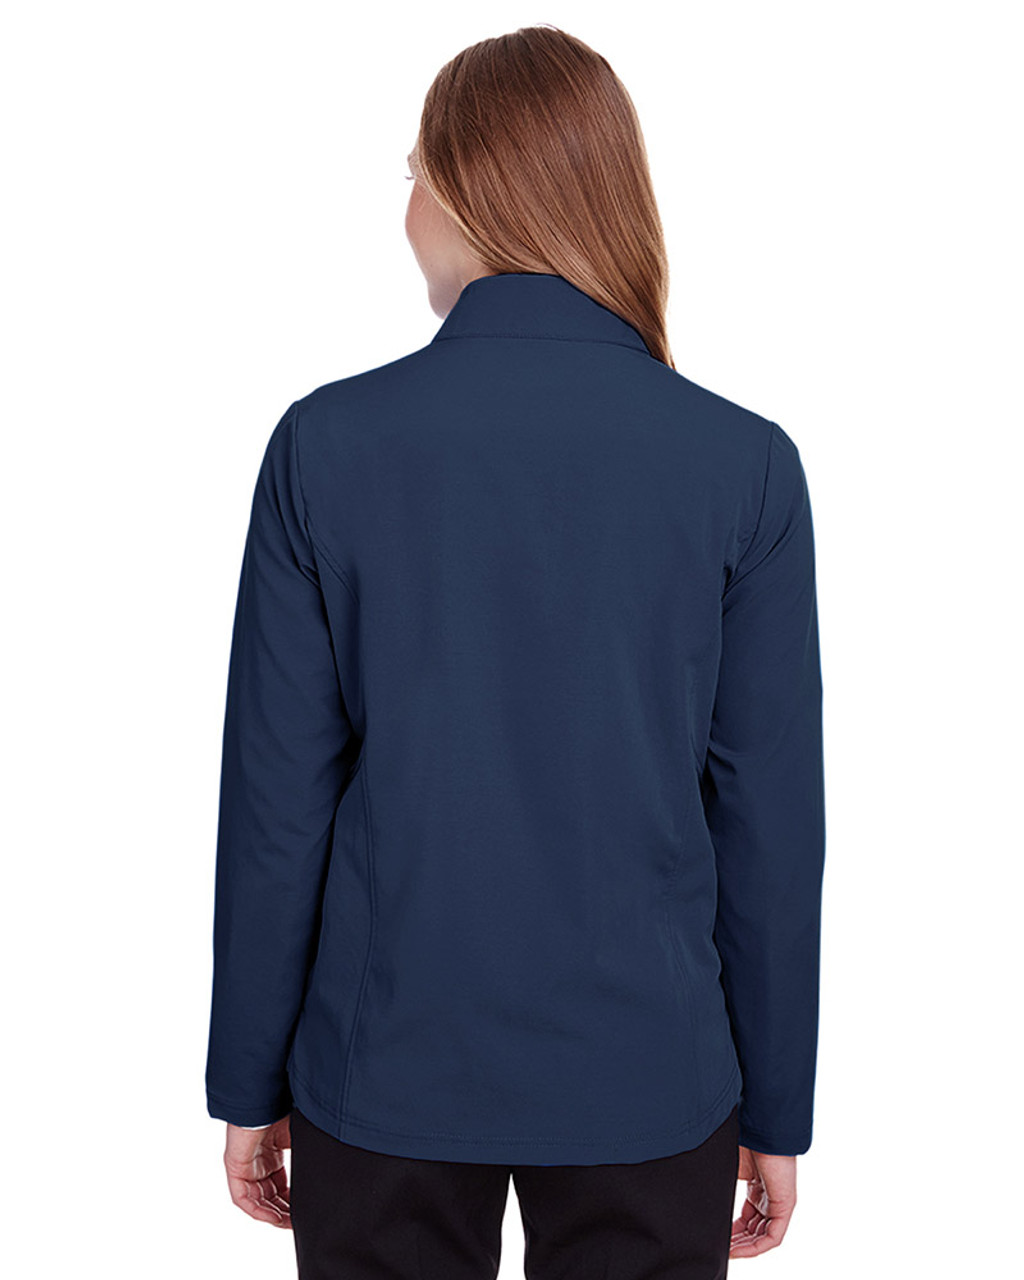 Classic Navy/Carbon - NE401W Ash City - North End Ladies' Quest Stretch Quarter-Zip Sweatshirt | Blankclothing.ca